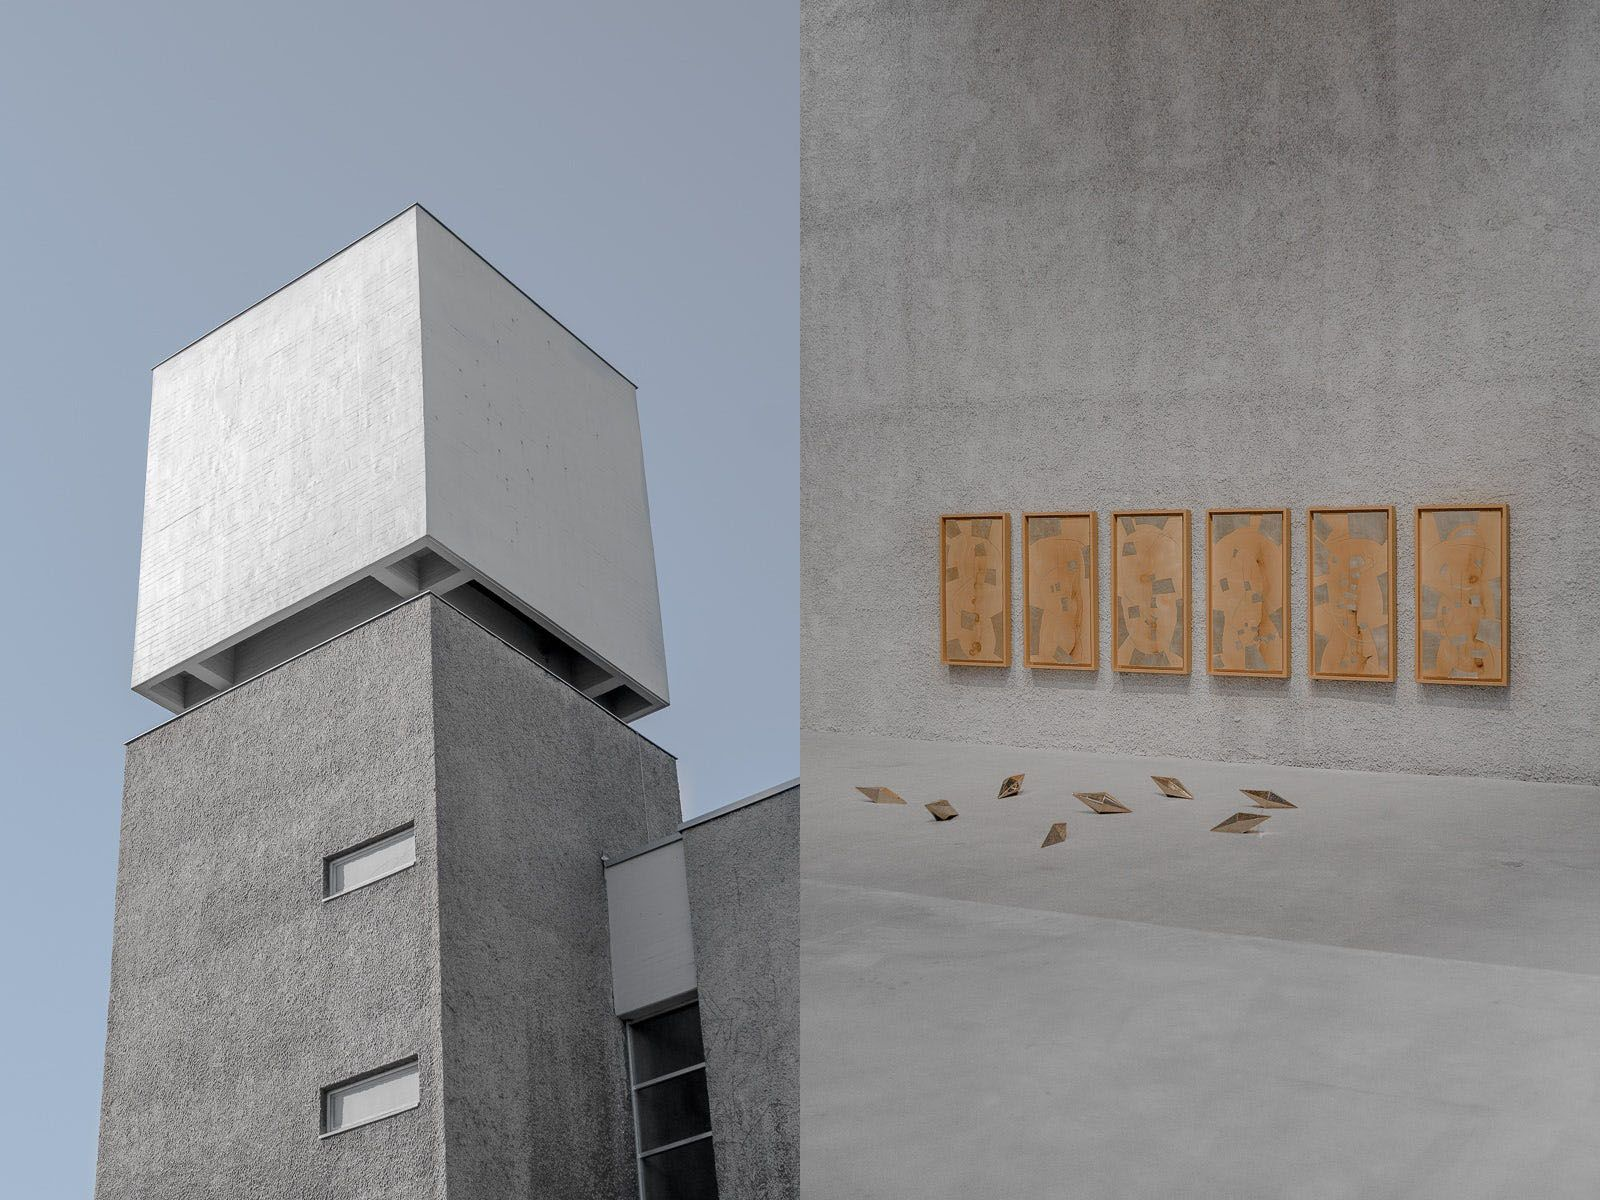 Konig Galerie In Berlin In 2020 Architectural Section Architecture Brutalist